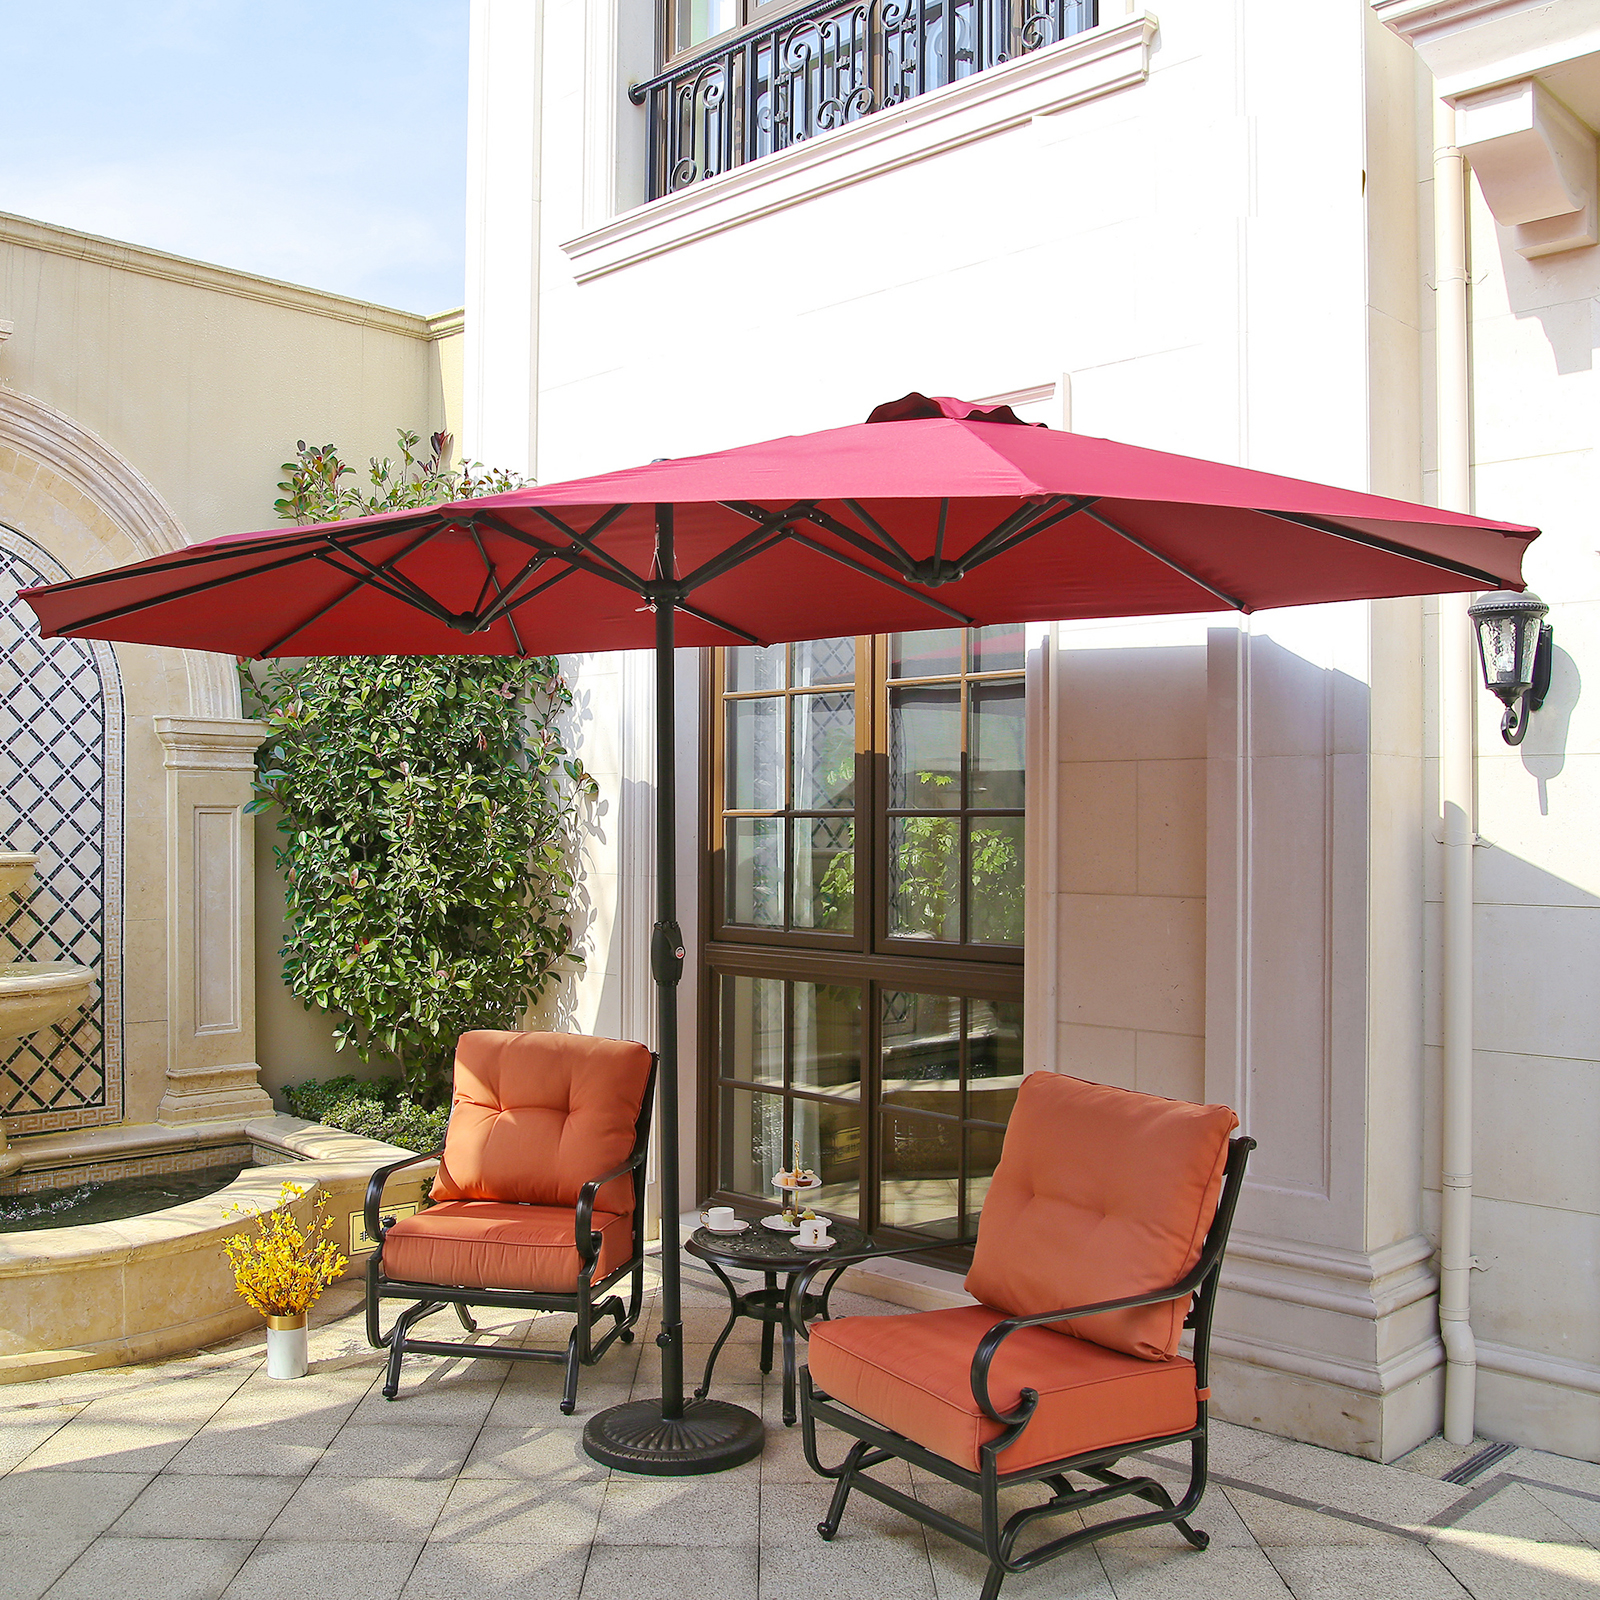 Charmant Details About 15u0027 220g Market Outdoor Twin Sun Canopy Double Sided Aluminum  Patio Umbrella